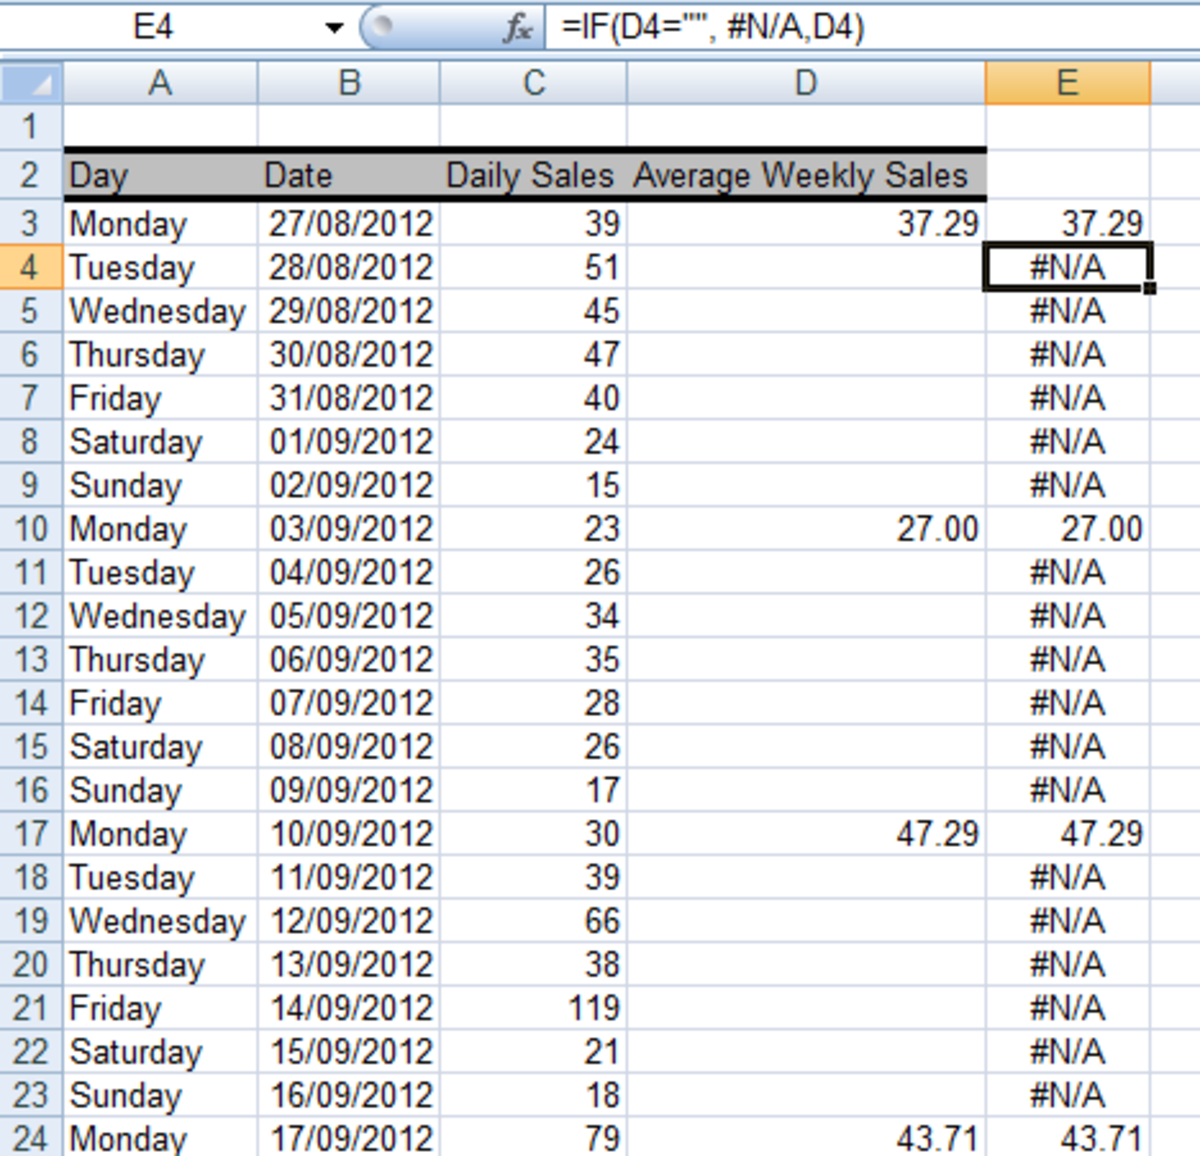 Ediblewildsus  Nice How To Get Excel  And  To Ignore Empty Cells In A Chart Or  With Fascinating Using The If Function In A Formula To Convert Empty Cells To Na With Amazing Excel Update Pivot Table Also How To Find Irr In Excel In Addition Ms Excel  Introduction And Gantt Chart For Excel As Well As Microsoft Excel Tricks And Tips Pdf Additionally How To Do Payroll In Excel From Turbofuturecom With Ediblewildsus  Fascinating How To Get Excel  And  To Ignore Empty Cells In A Chart Or  With Amazing Using The If Function In A Formula To Convert Empty Cells To Na And Nice Excel Update Pivot Table Also How To Find Irr In Excel In Addition Ms Excel  Introduction From Turbofuturecom